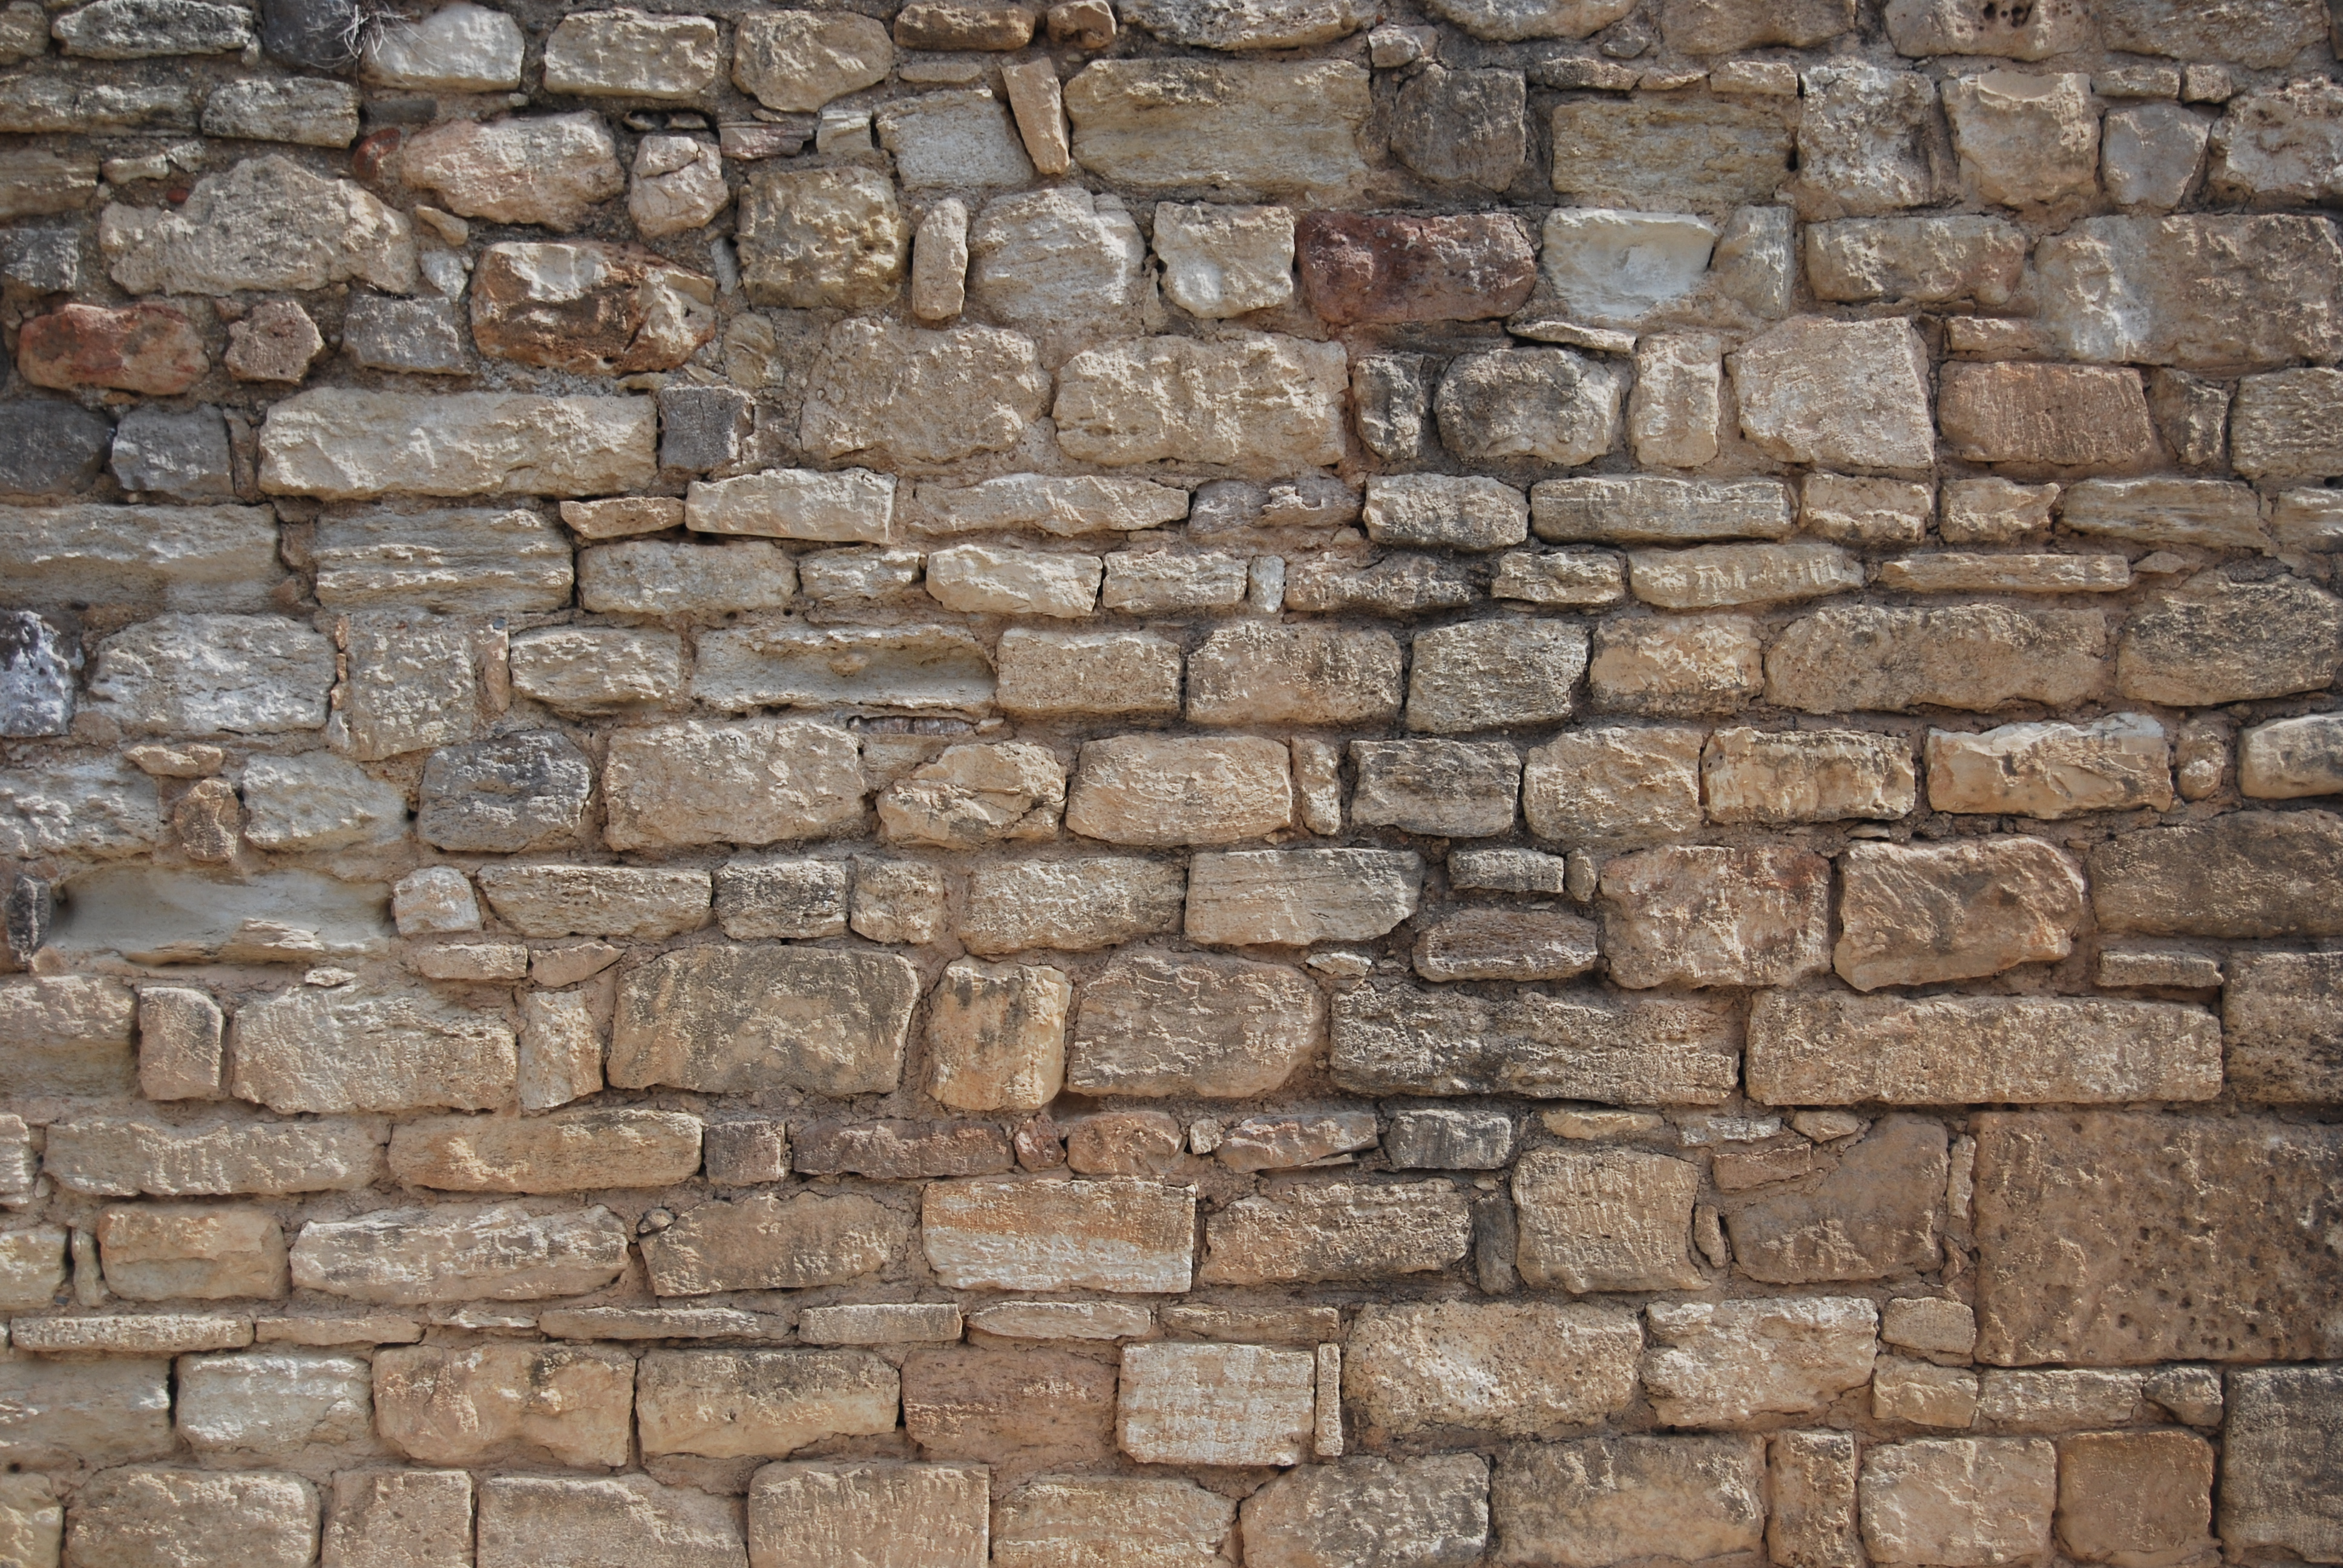 Stone Wall Texture by Digger2000 on DeviantArt